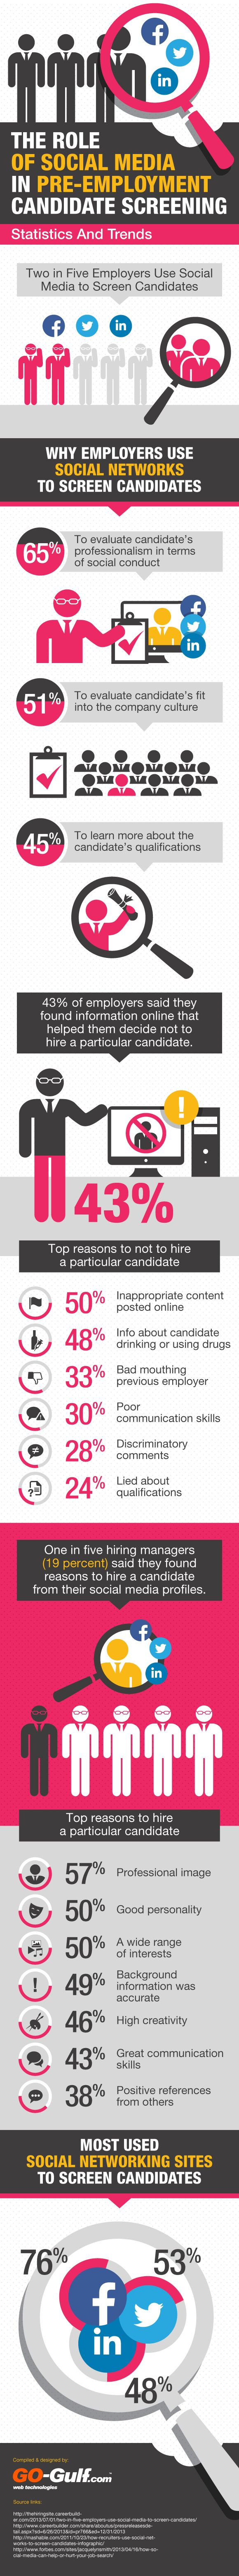 The Role of #SocialMedia In Pre-Employment Candidate Screening #INFOGRAPHIC